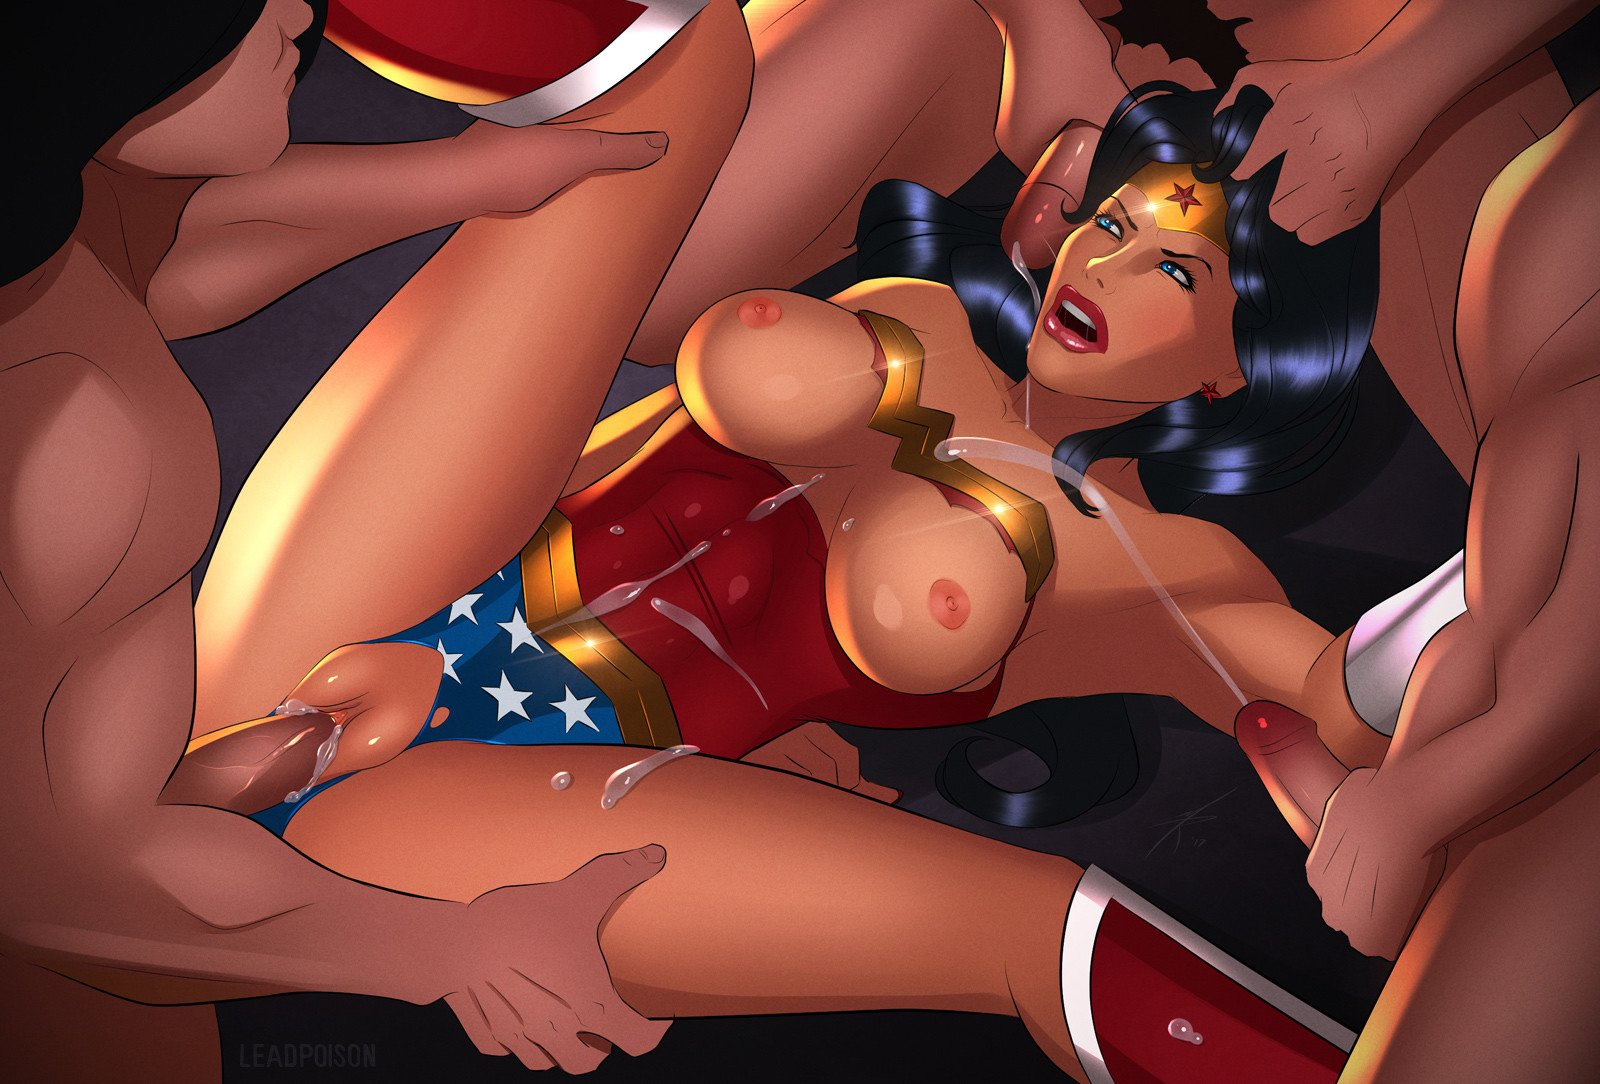 superwoman-have-sex-naked-dildo